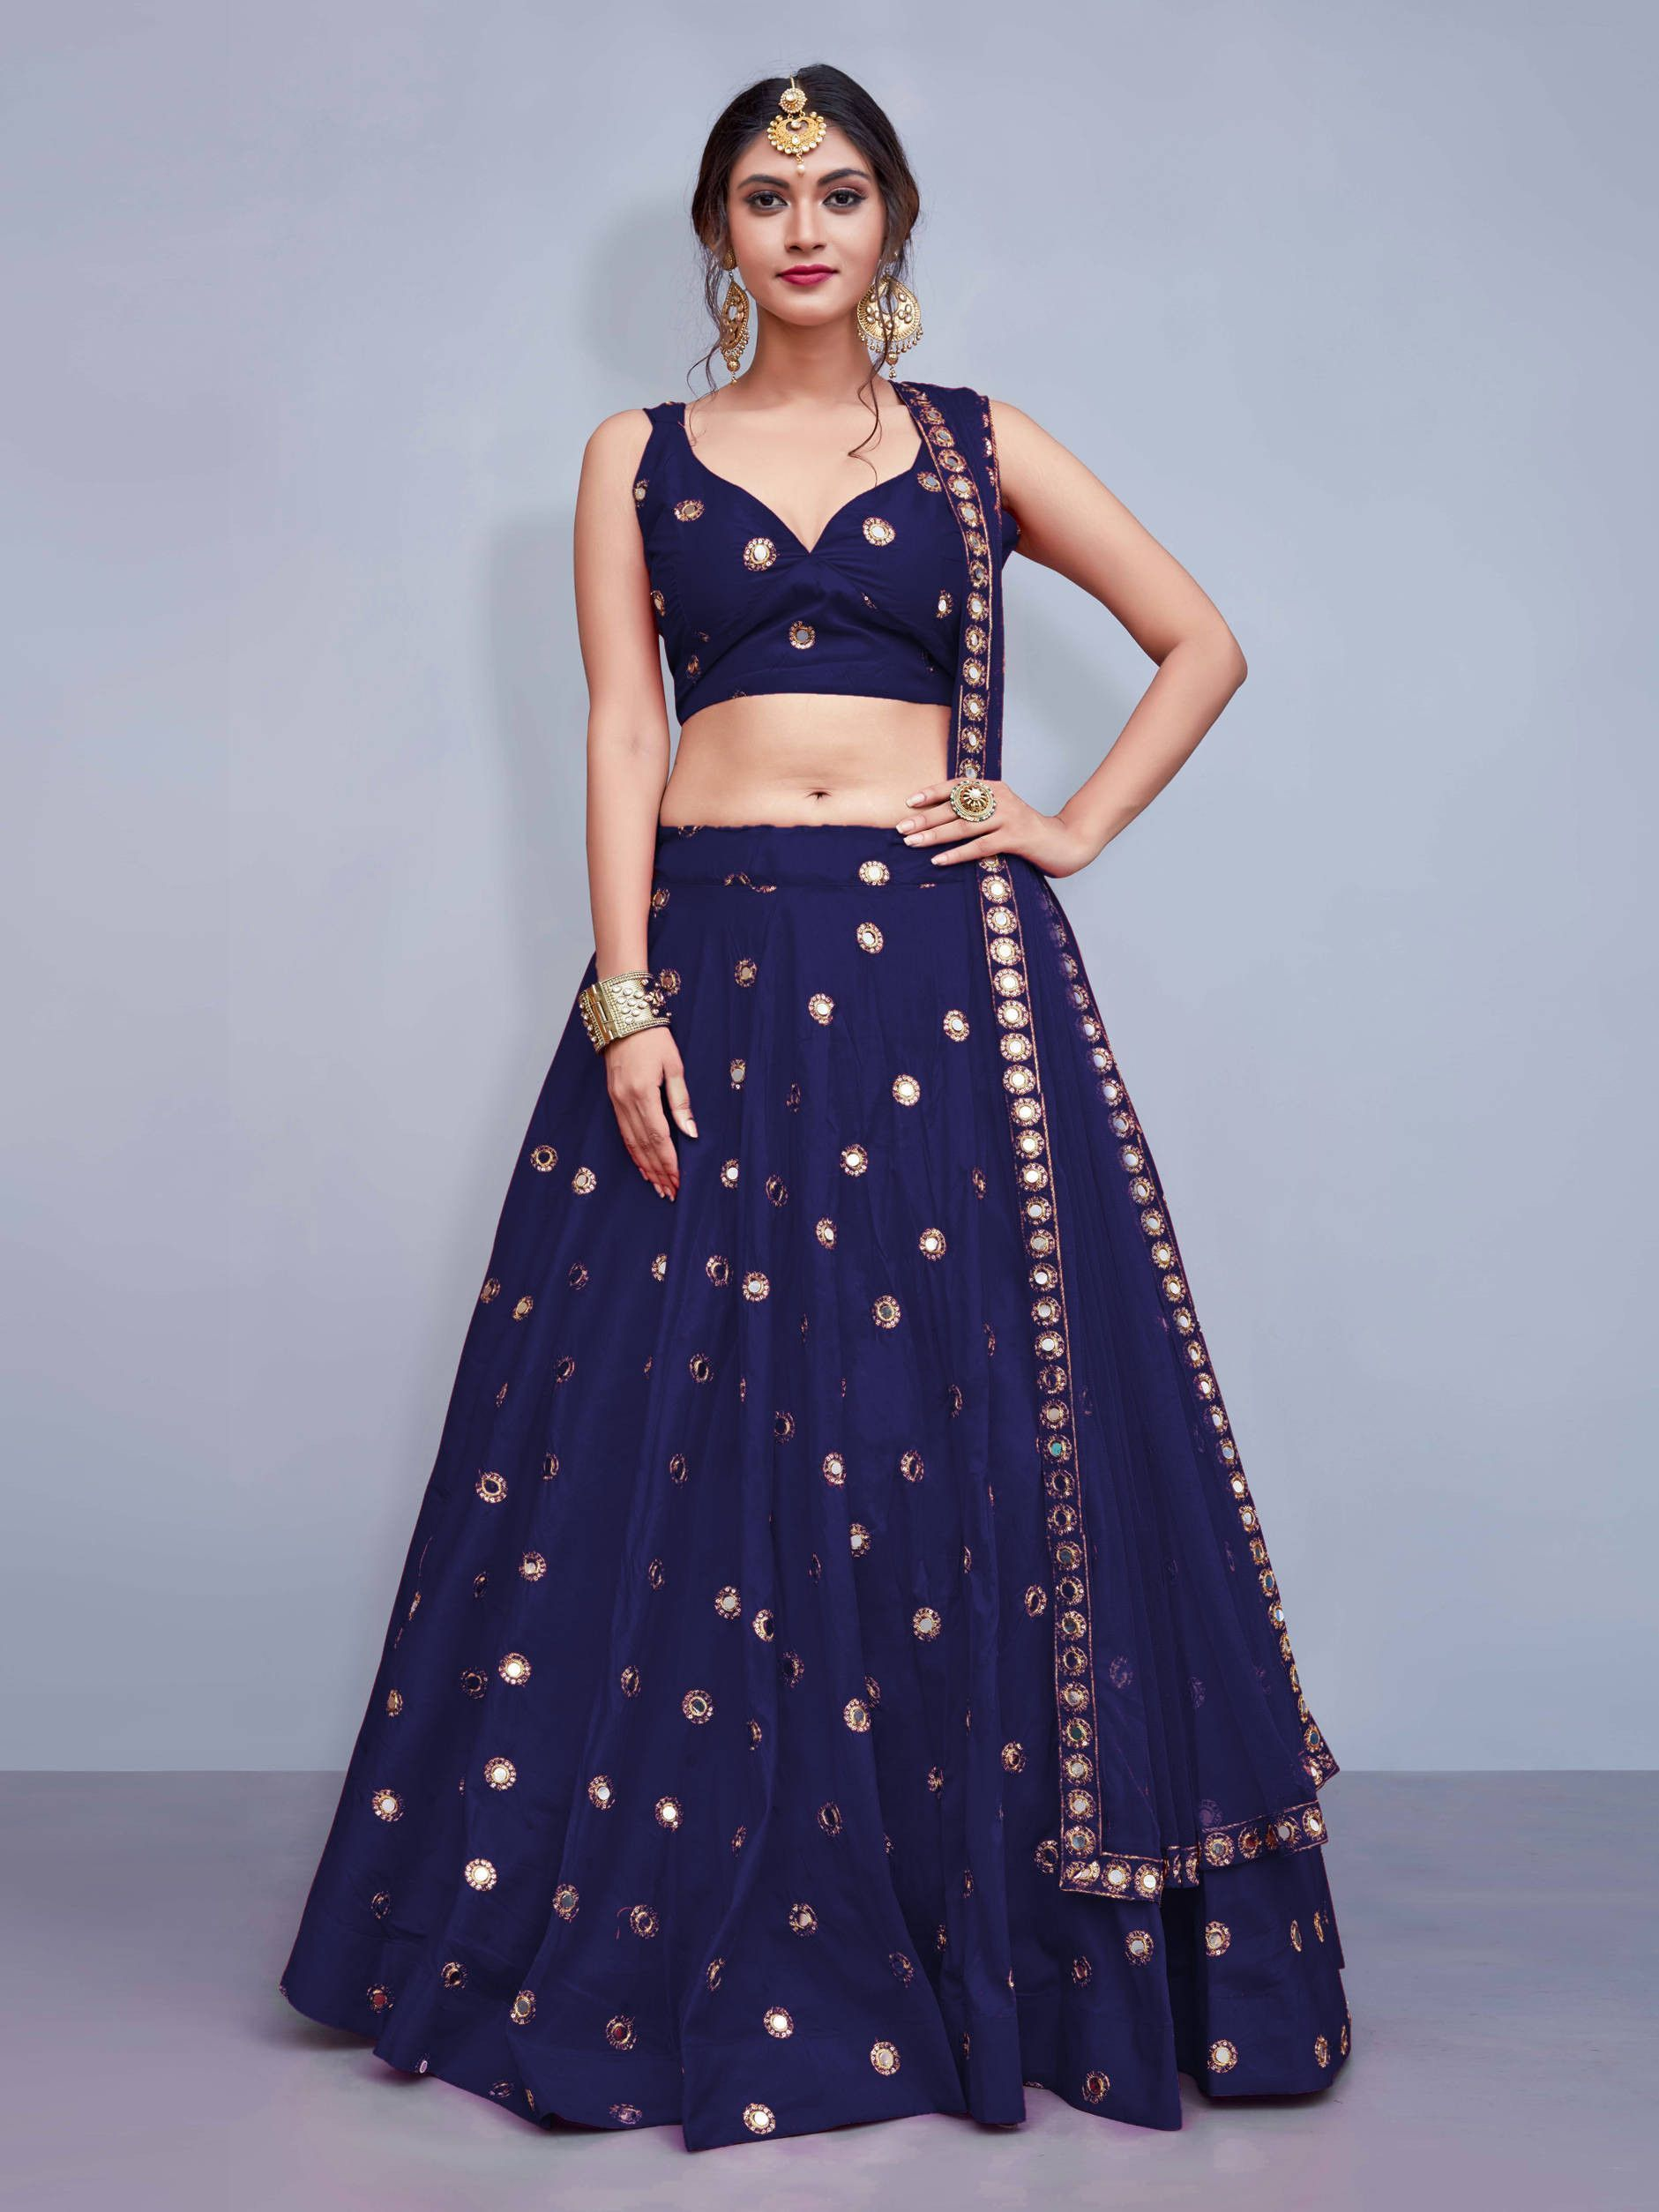 Readymade Navy Blue Mirror Work Taffeta Silk Party Wear Lehenga Choli With Dupatta